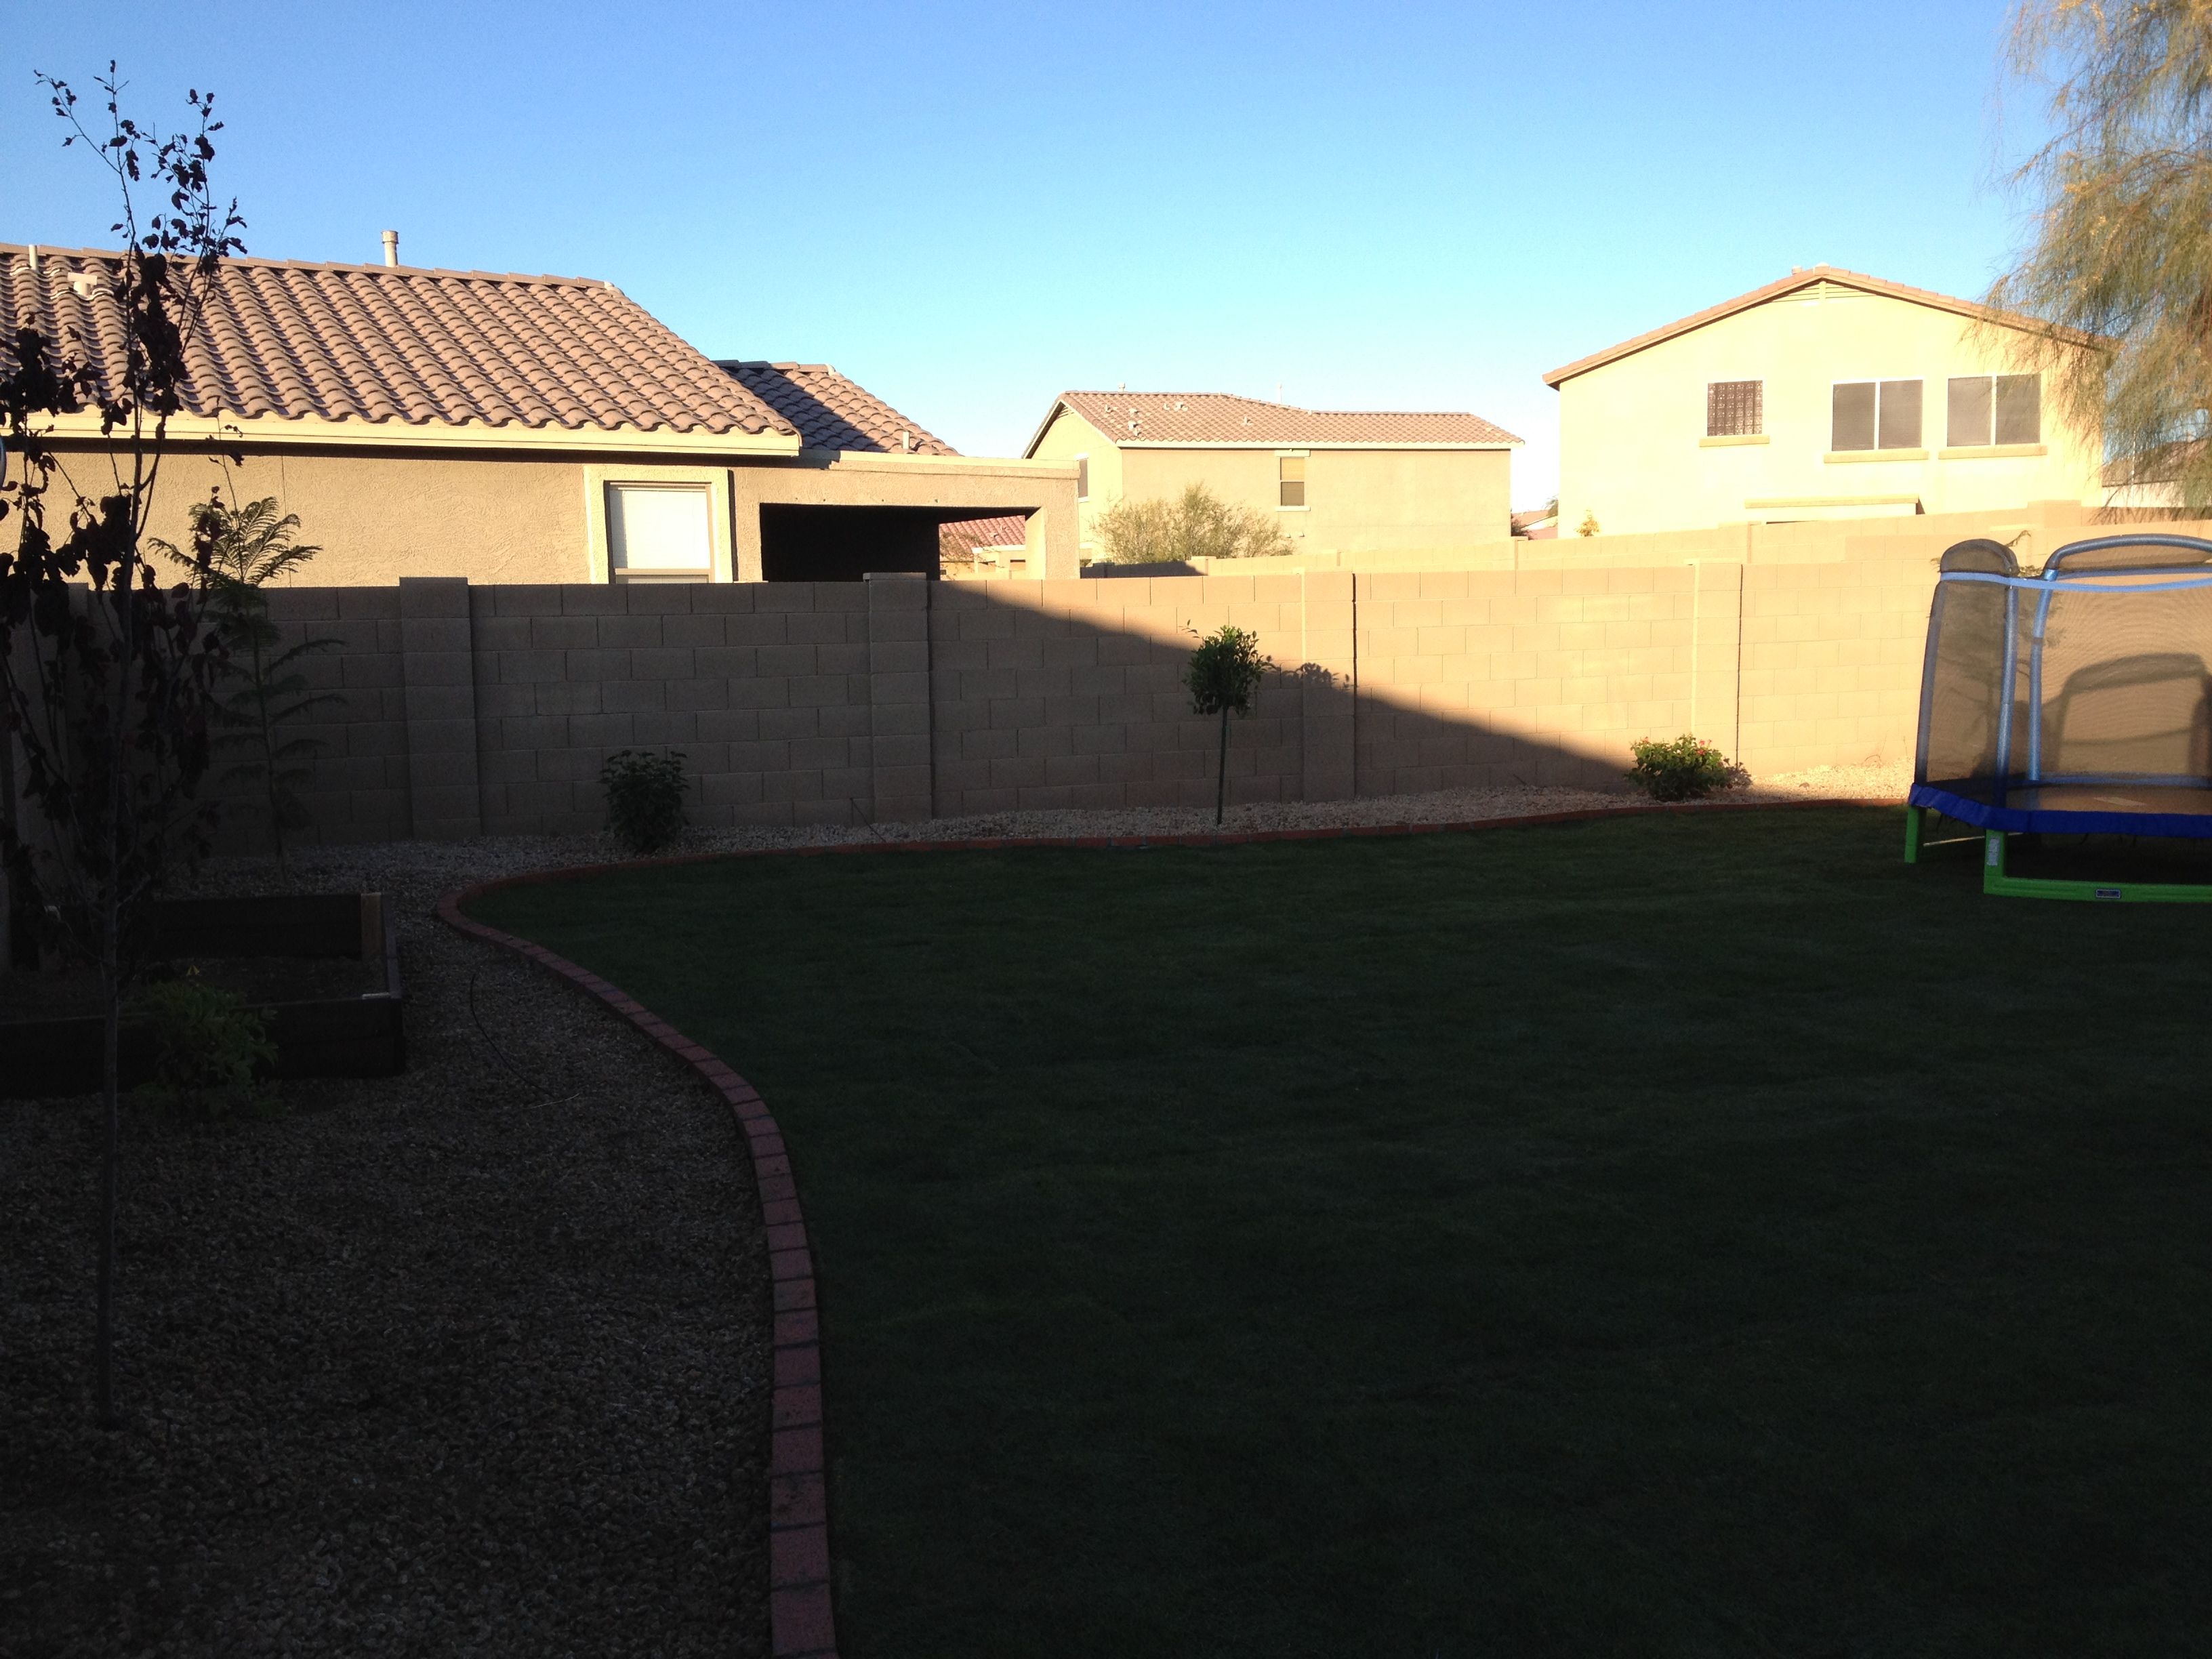 Nicks Lawn Care Service And Landscaping Design